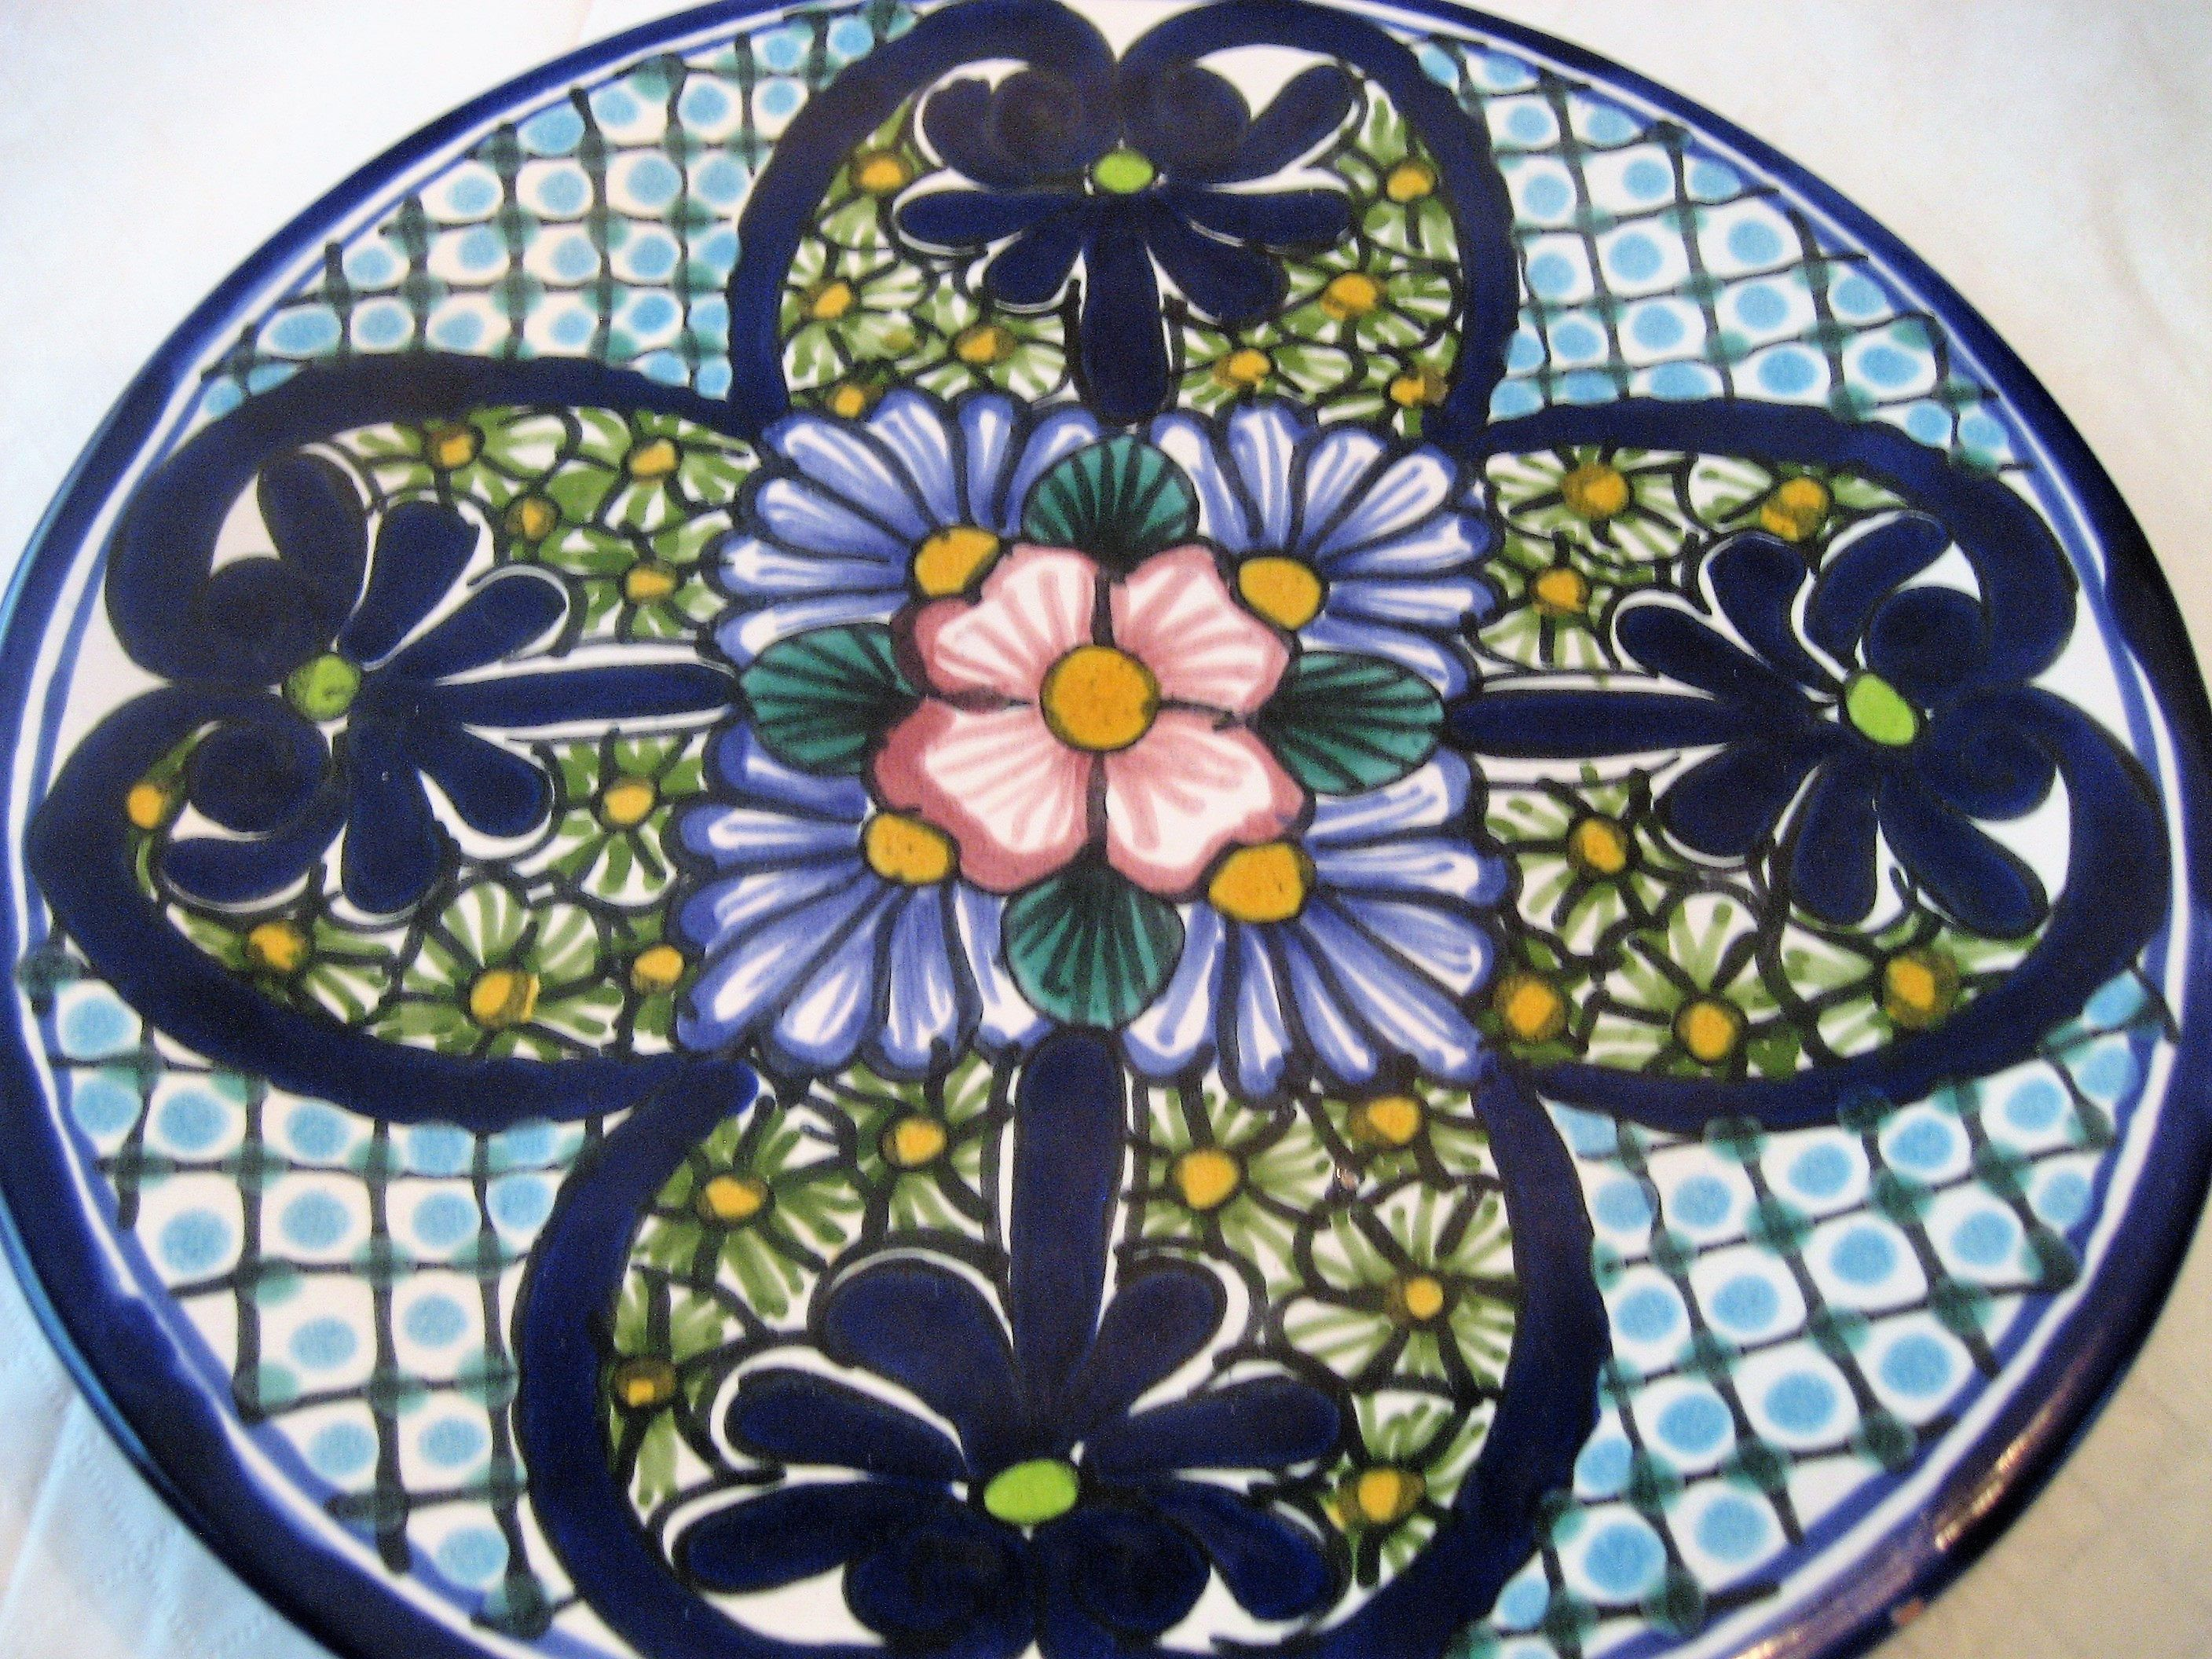 Mexican Talavera Pottery Plate Signed Fl Mora Hecho En Mexico Floral Design Wall Hanging Serving Plate & Mexican Talavera Pottery Plate Signed Fl Mora Hecho En Mexico Floral ...